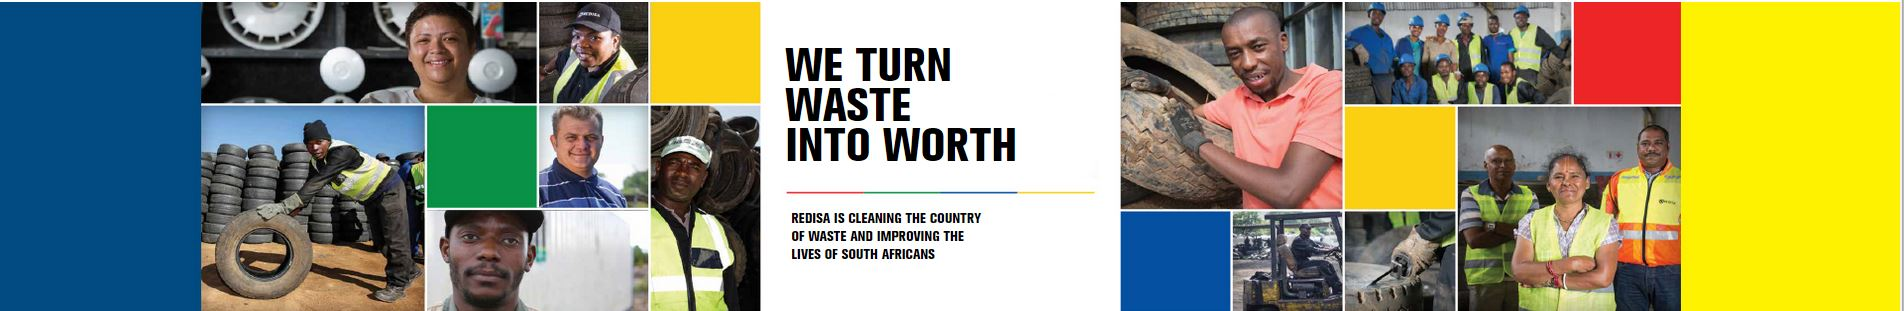 redisa, waste, recycling, EPR, South Africa, insurance, environmental protection, wasteless future